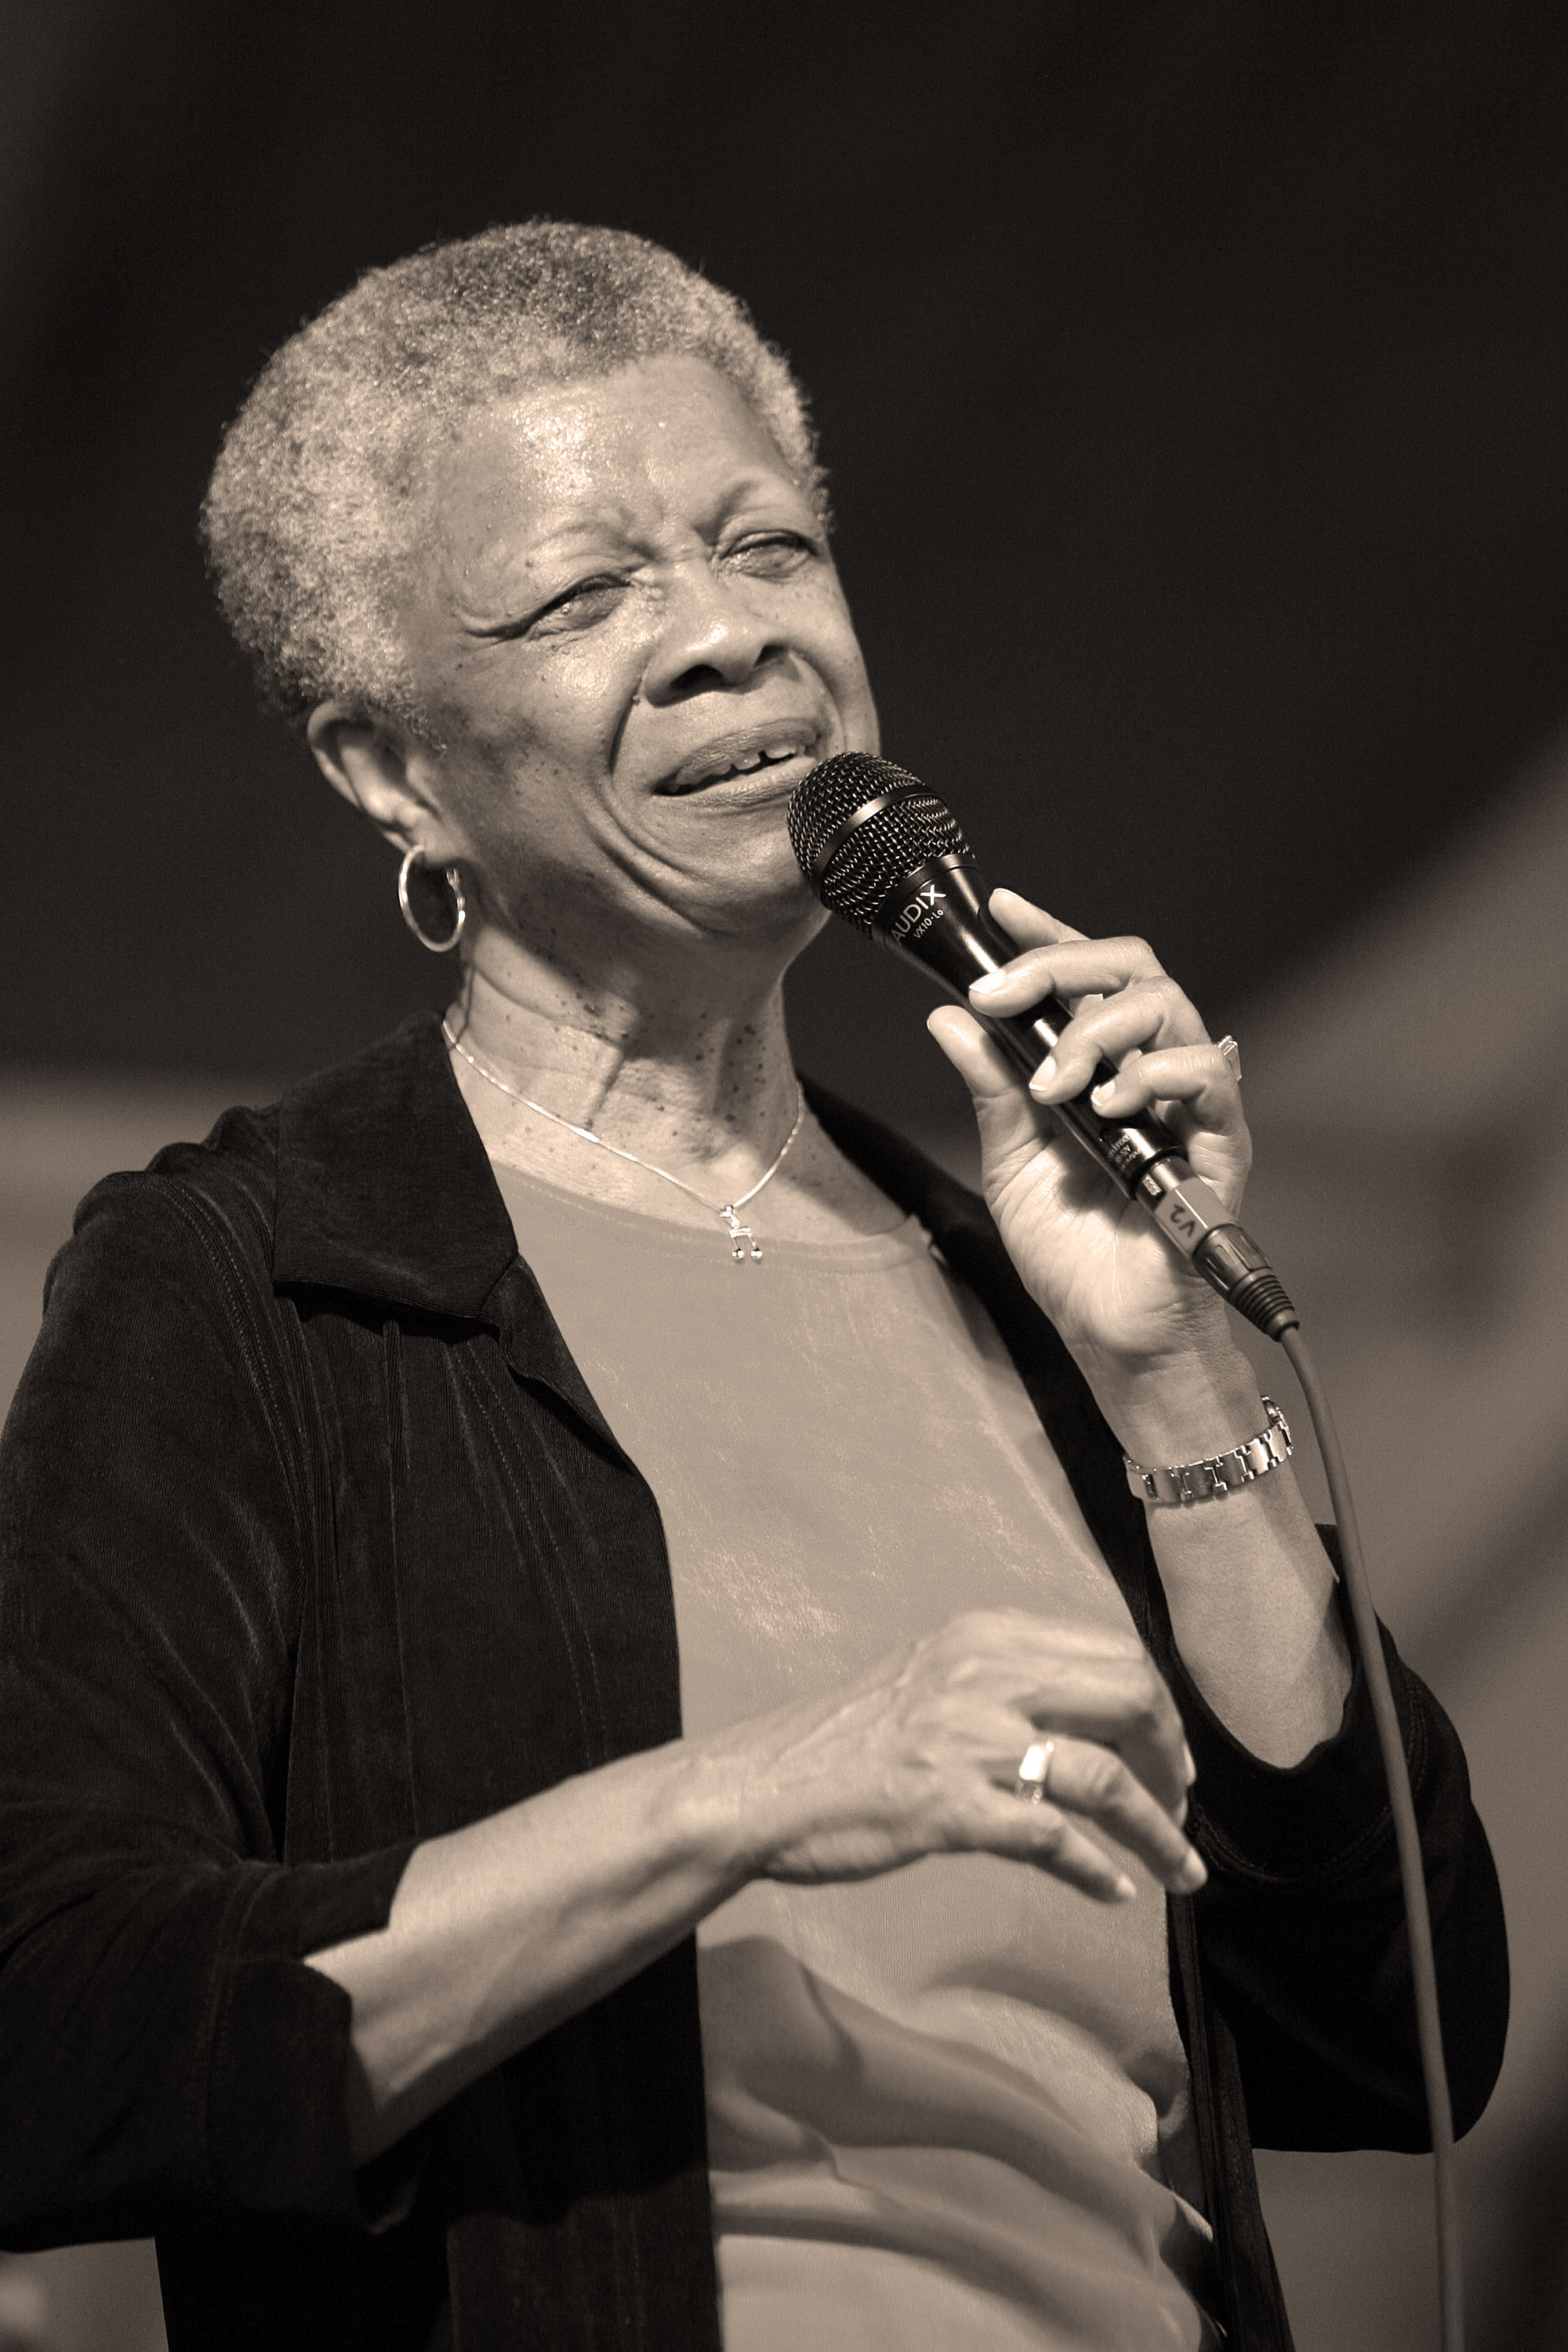 Germaine Bazzle at the New Orleans Jazz and Heritage Festival 2006